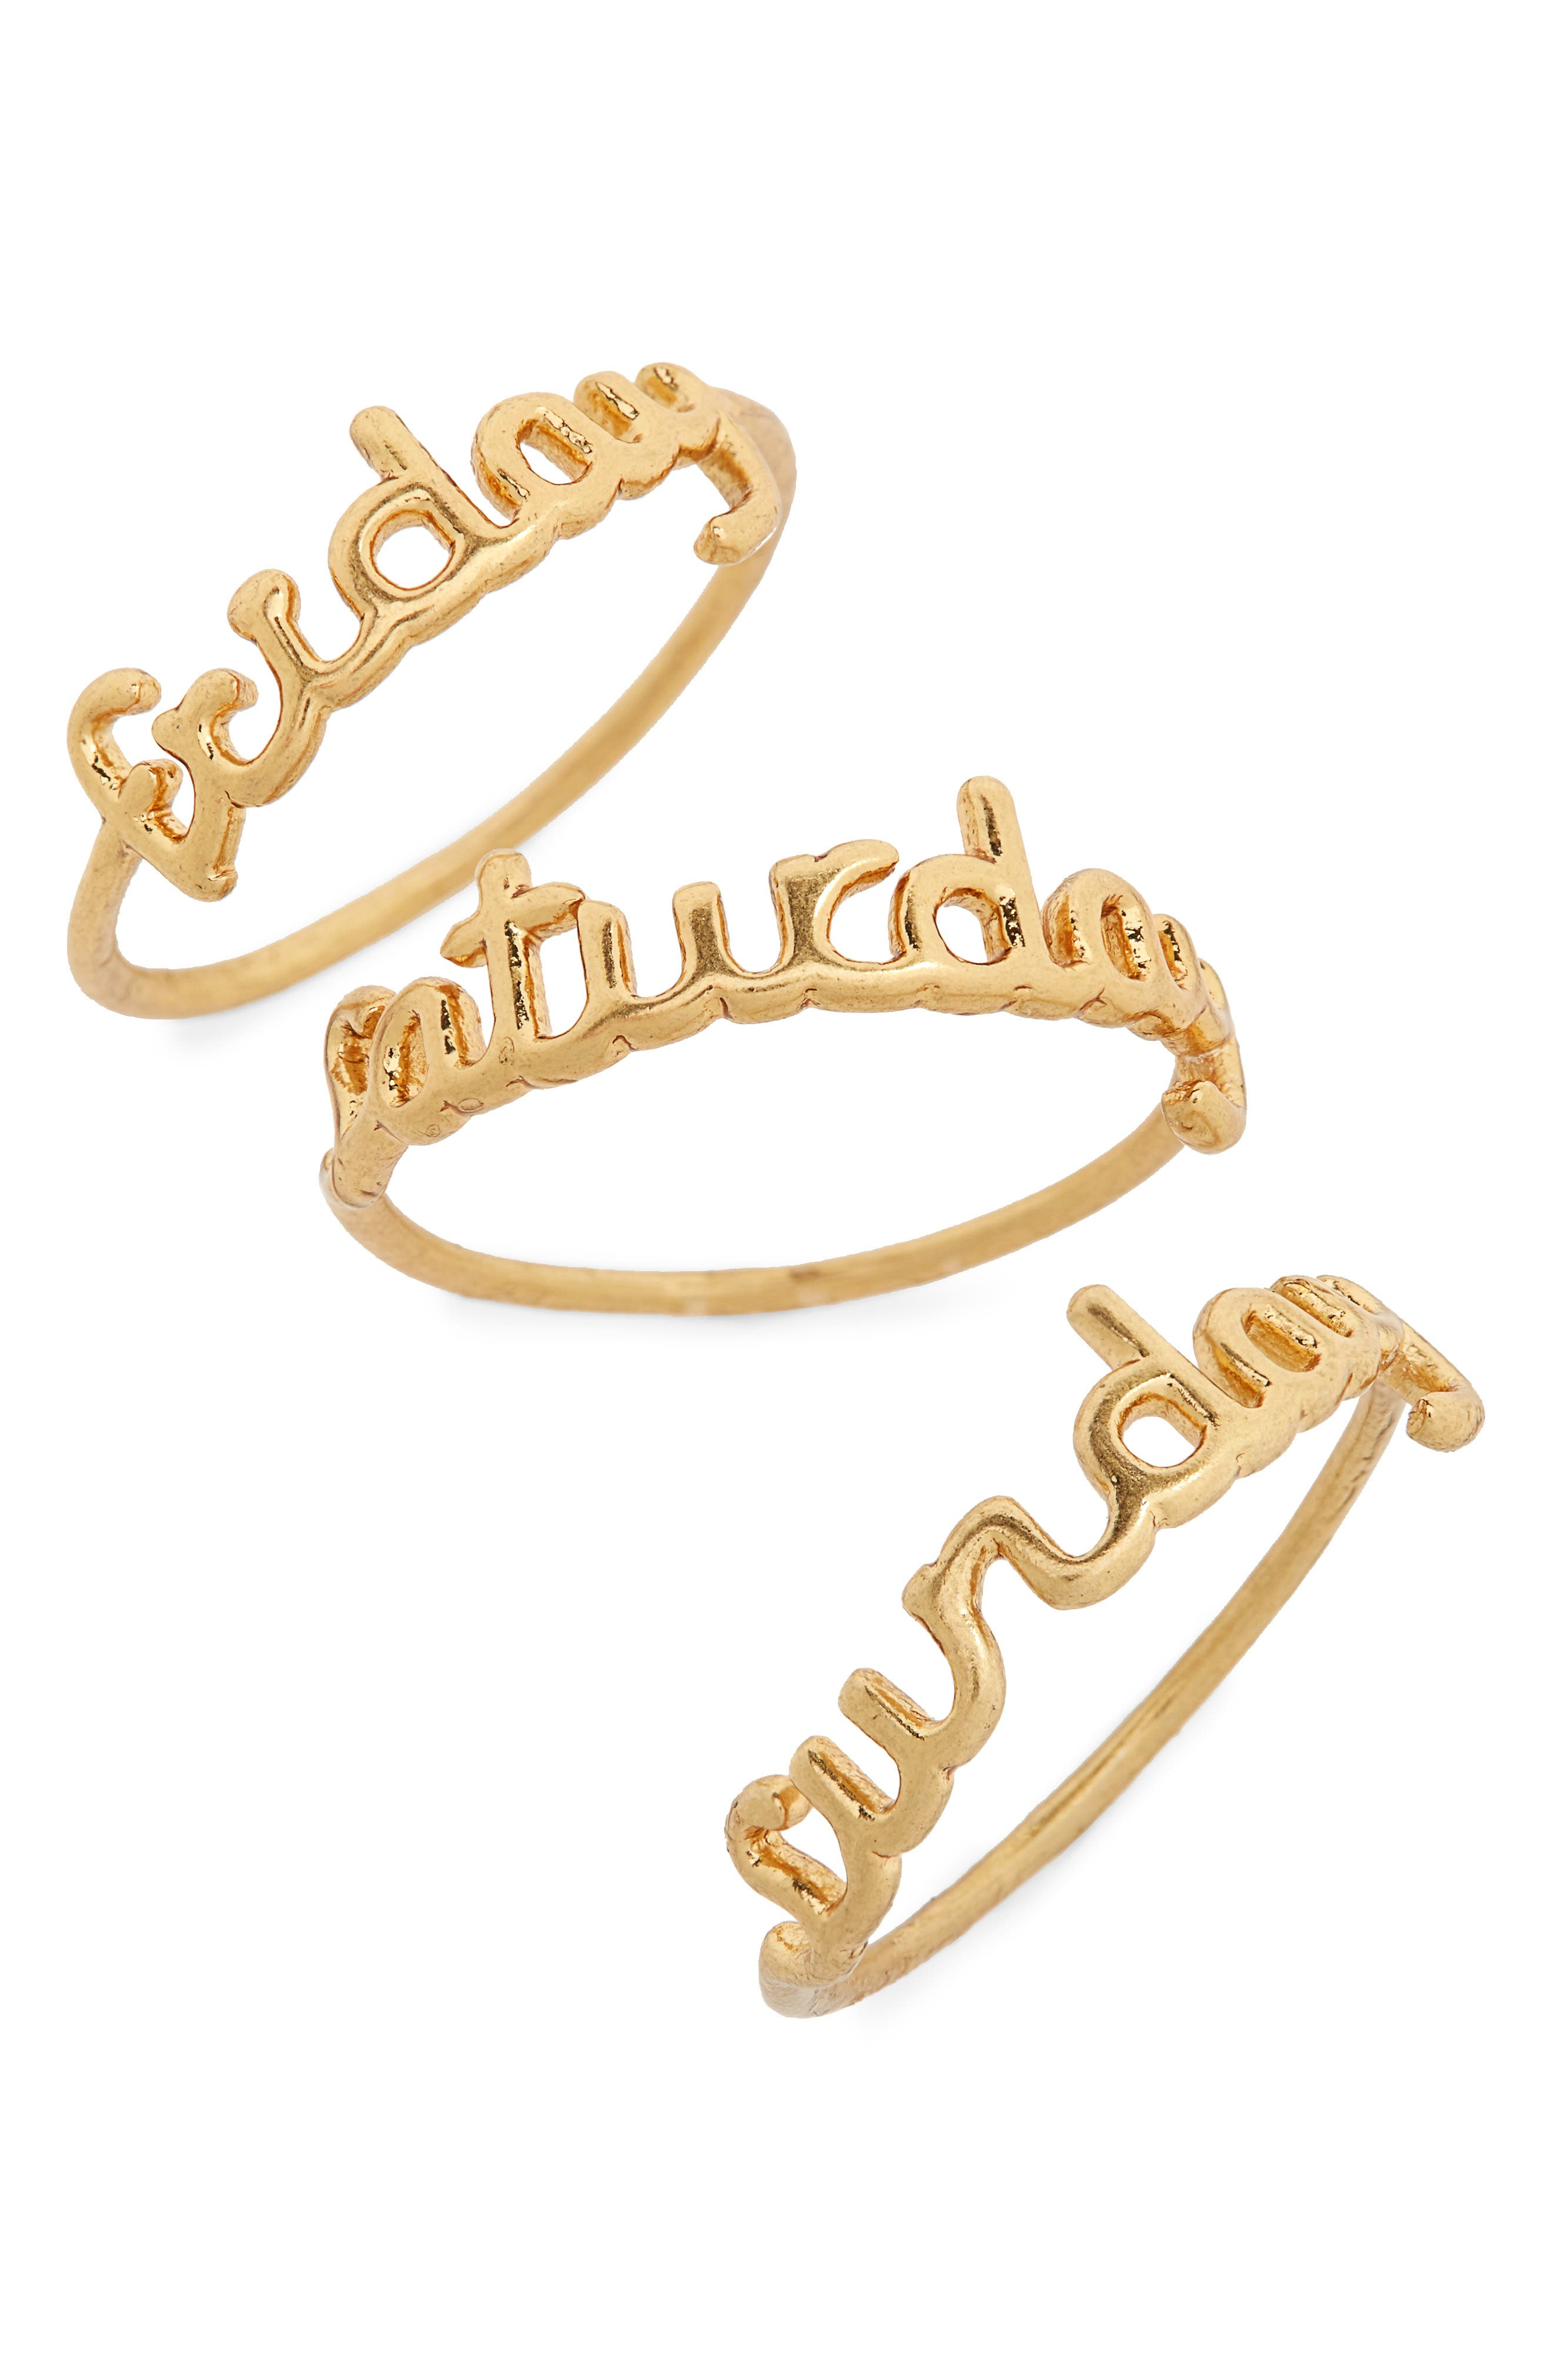 Friday Saturday Sunday Stacking Rings,                         Main,                         color, Gold Ox